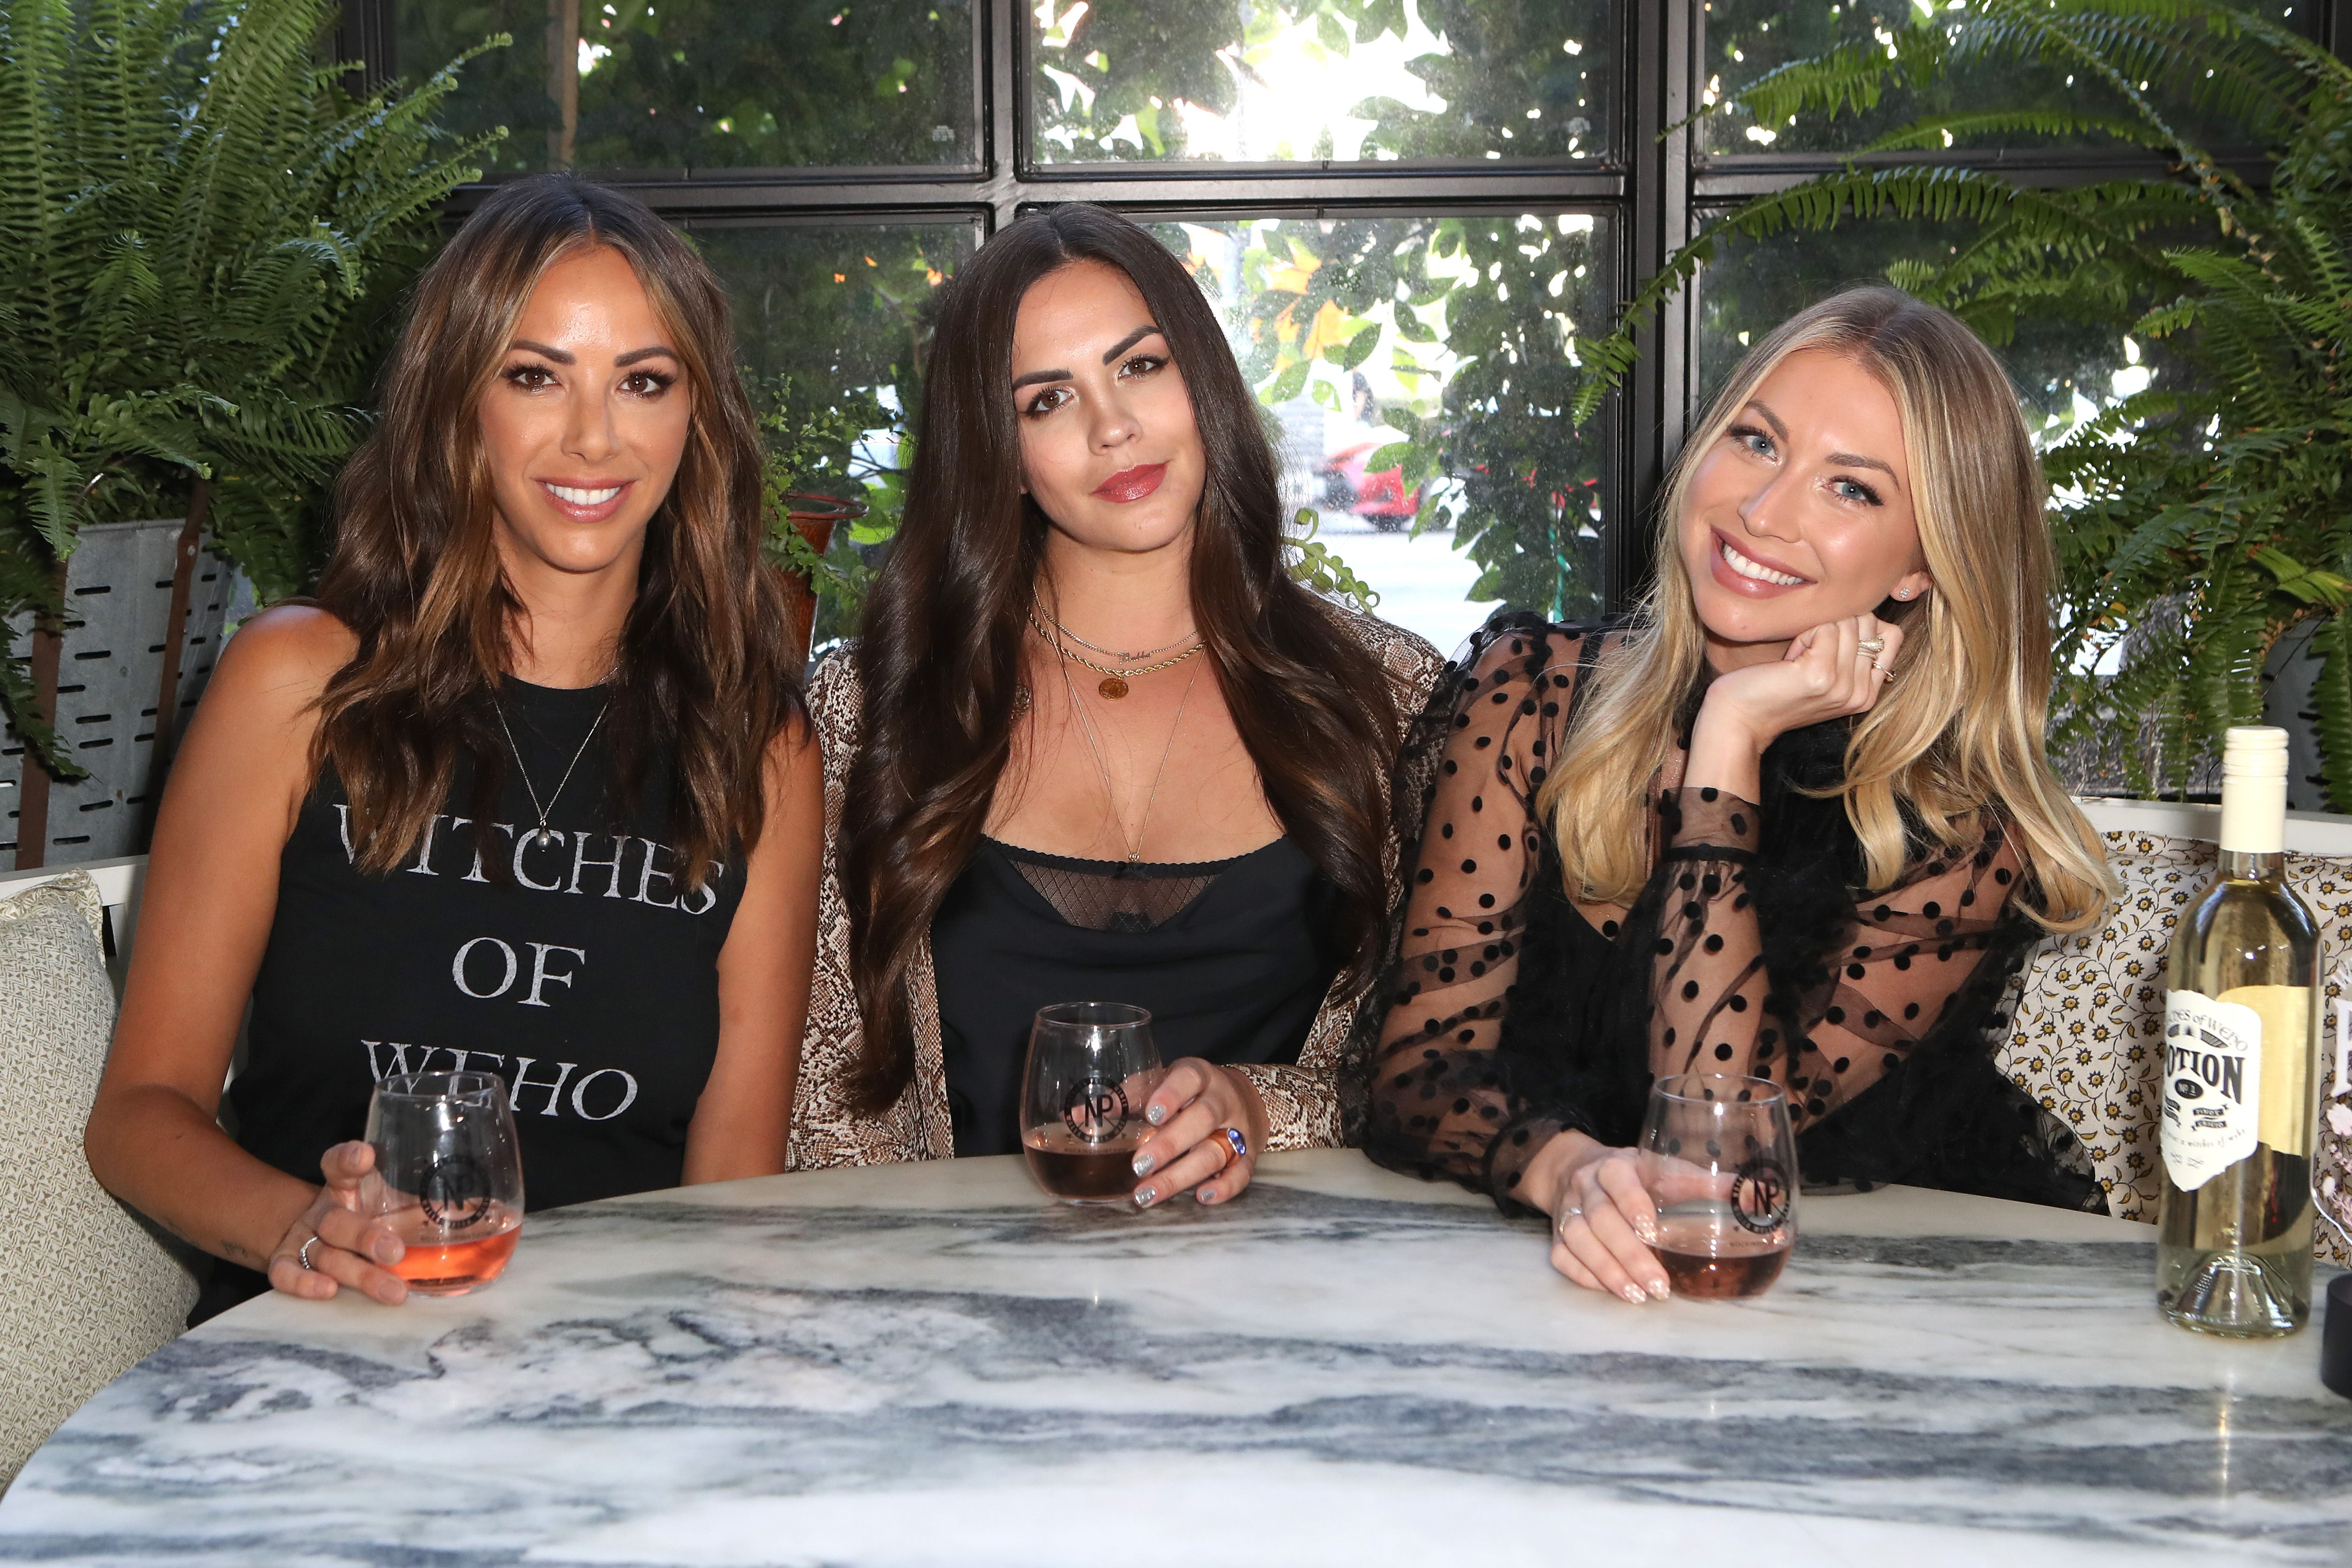 Kristen Doute (left), Katie Maloney-Schwartz (middle) and Stassi Schroeder (right) sit holding glasses of wine